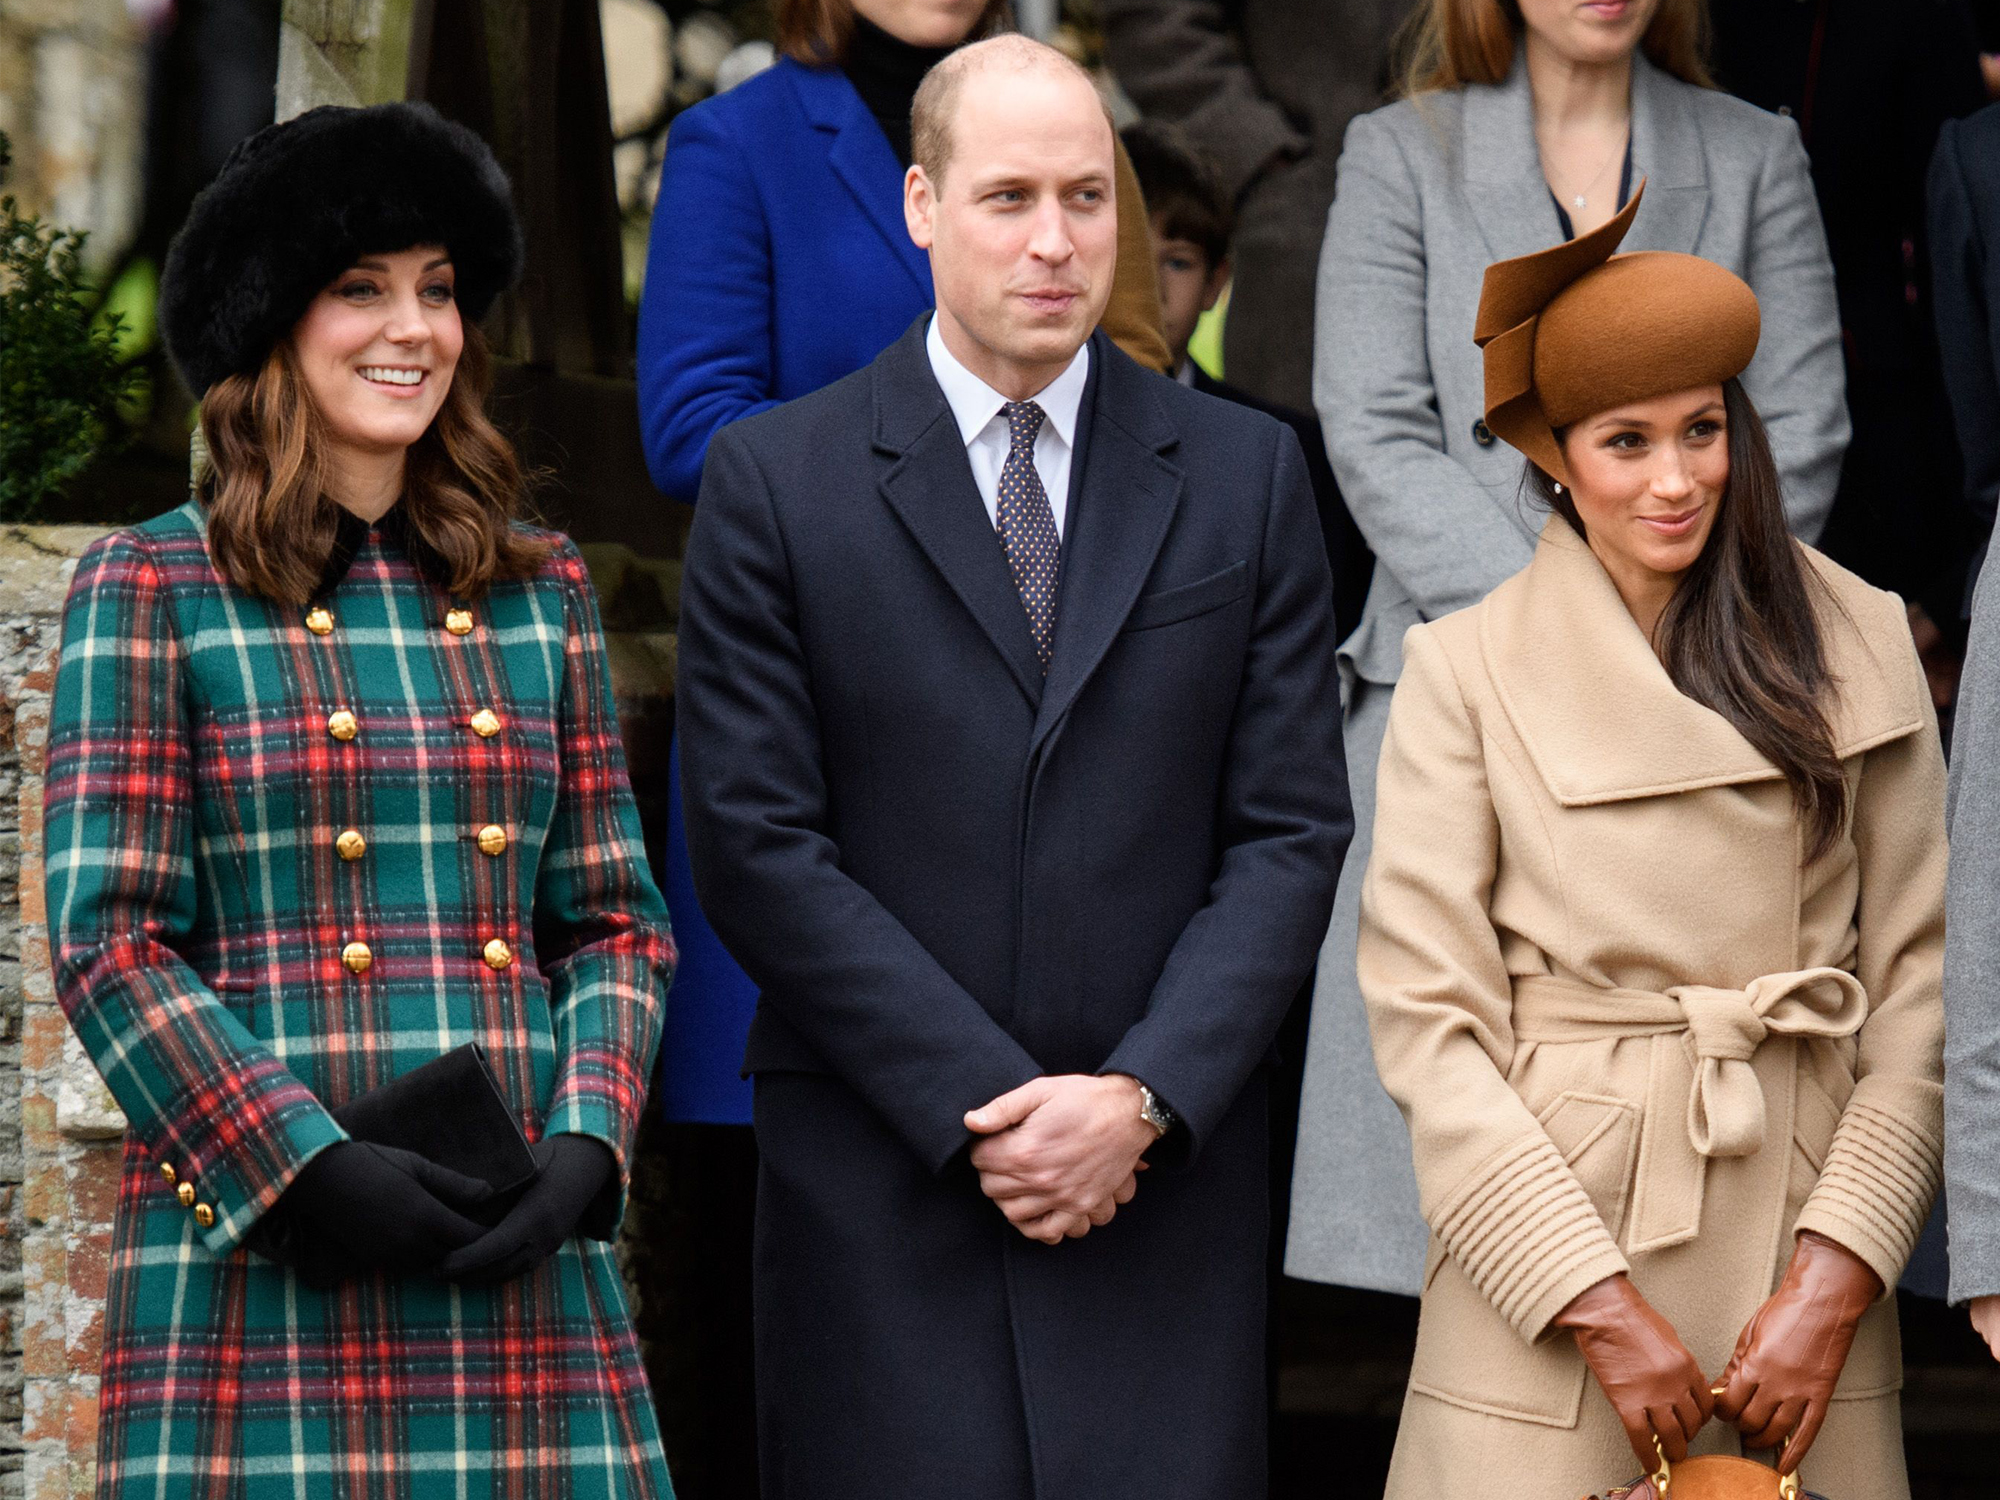 Harry and Meghan have left Prince William 'furious' over this conflict